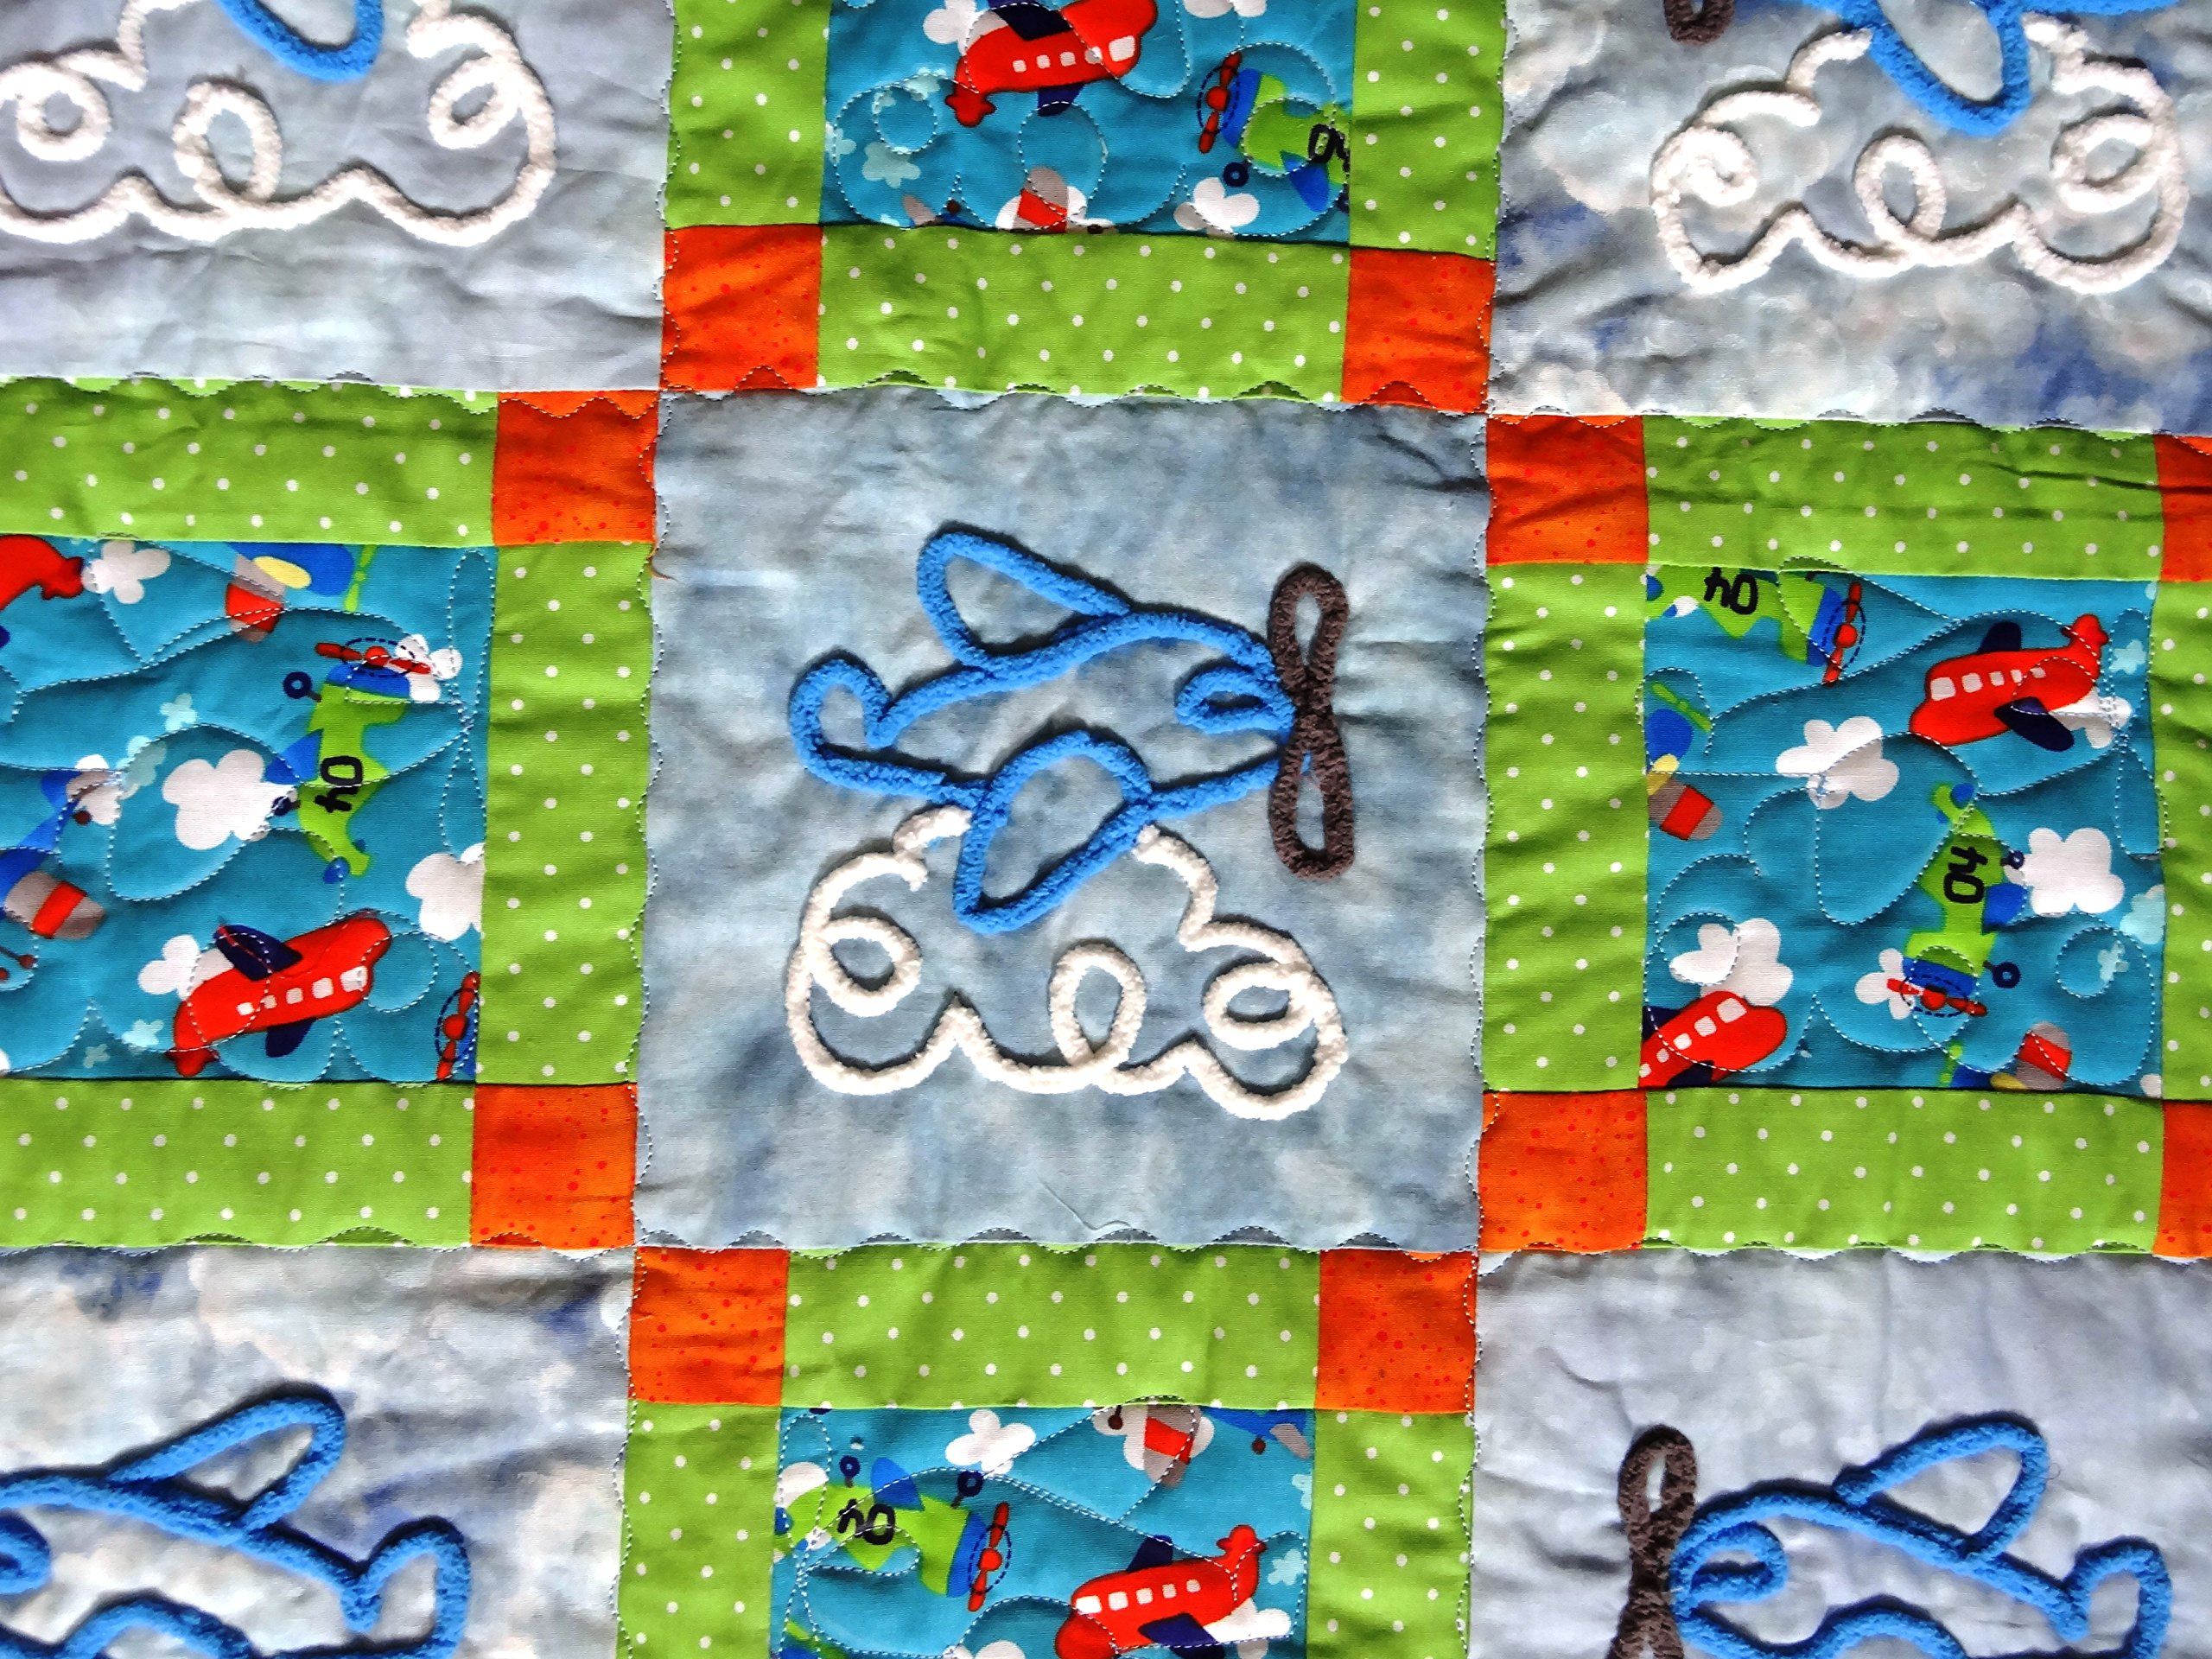 Chenille Airplanes on Adorable Baby Quilt 40 x 48 Inches